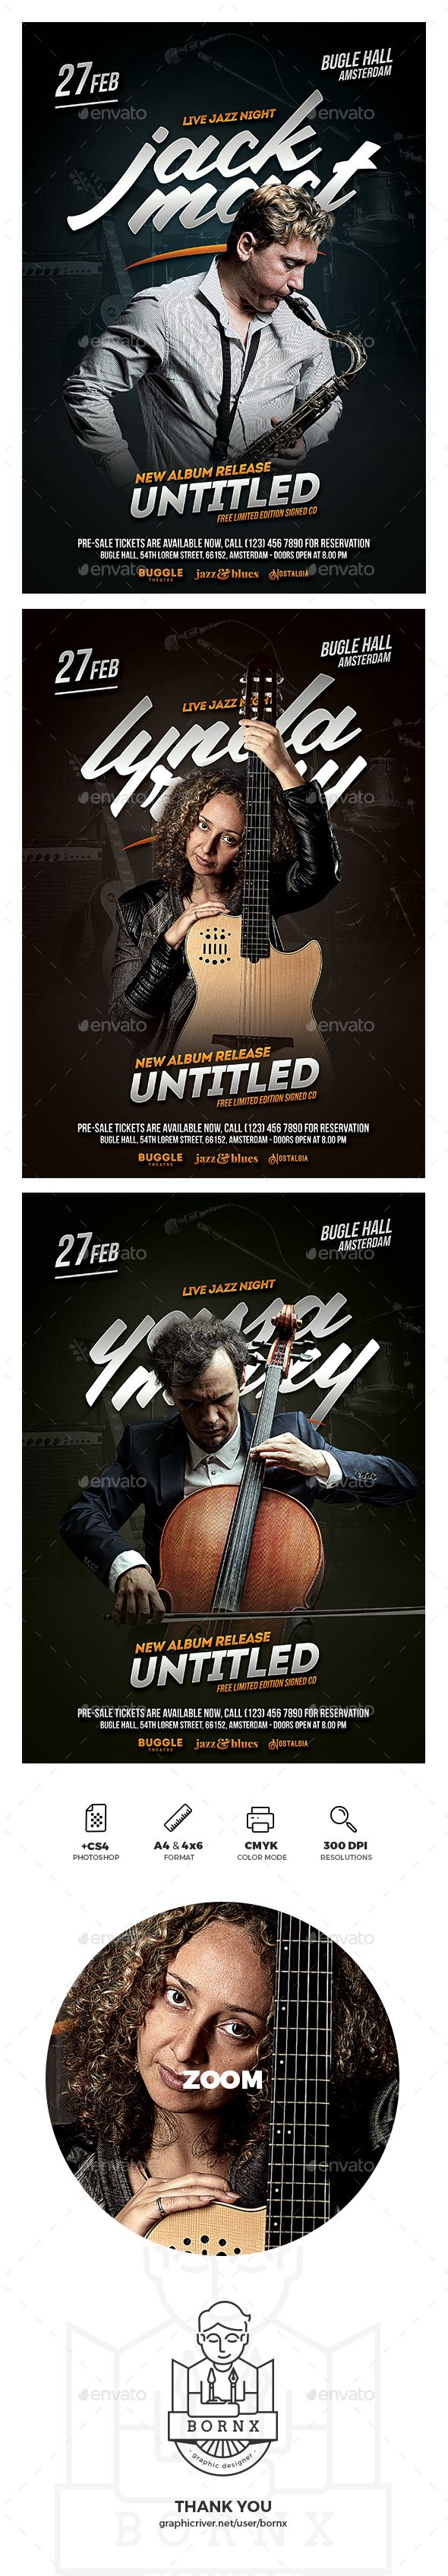 Jazz Musician Flyer Template PSD